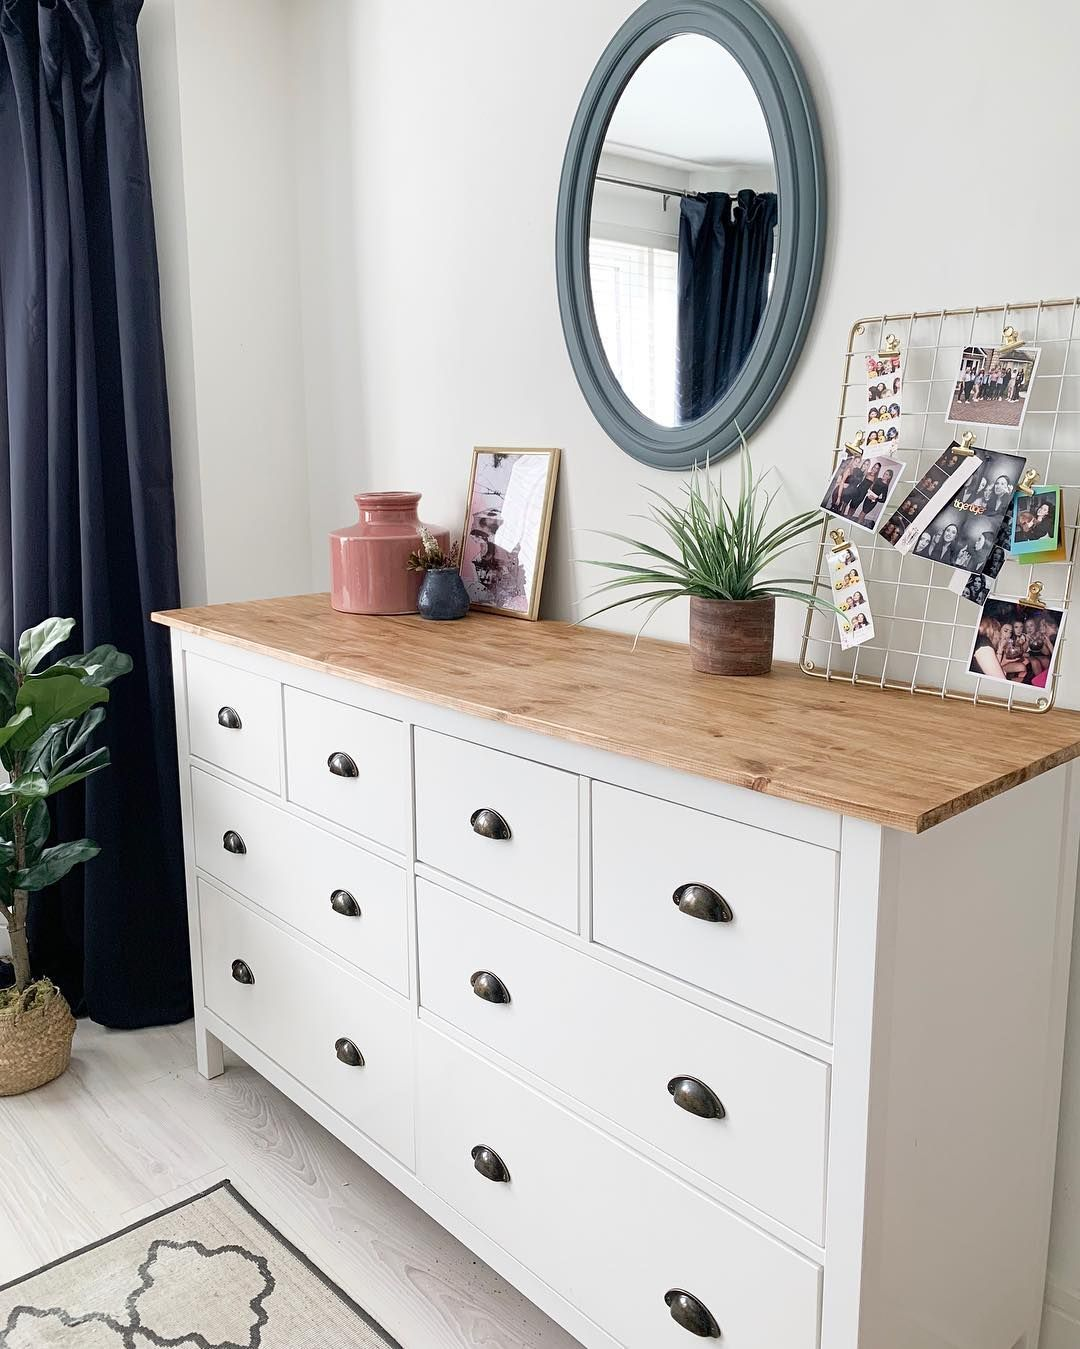 Ruth On Instagram A Saturday Morning Ikea Hack This Is The Shiny White Ikeauk Hemnes Chest Of Drawers So You Can T Sand Th Ikea Kommode Hack Ikea Haus Deko